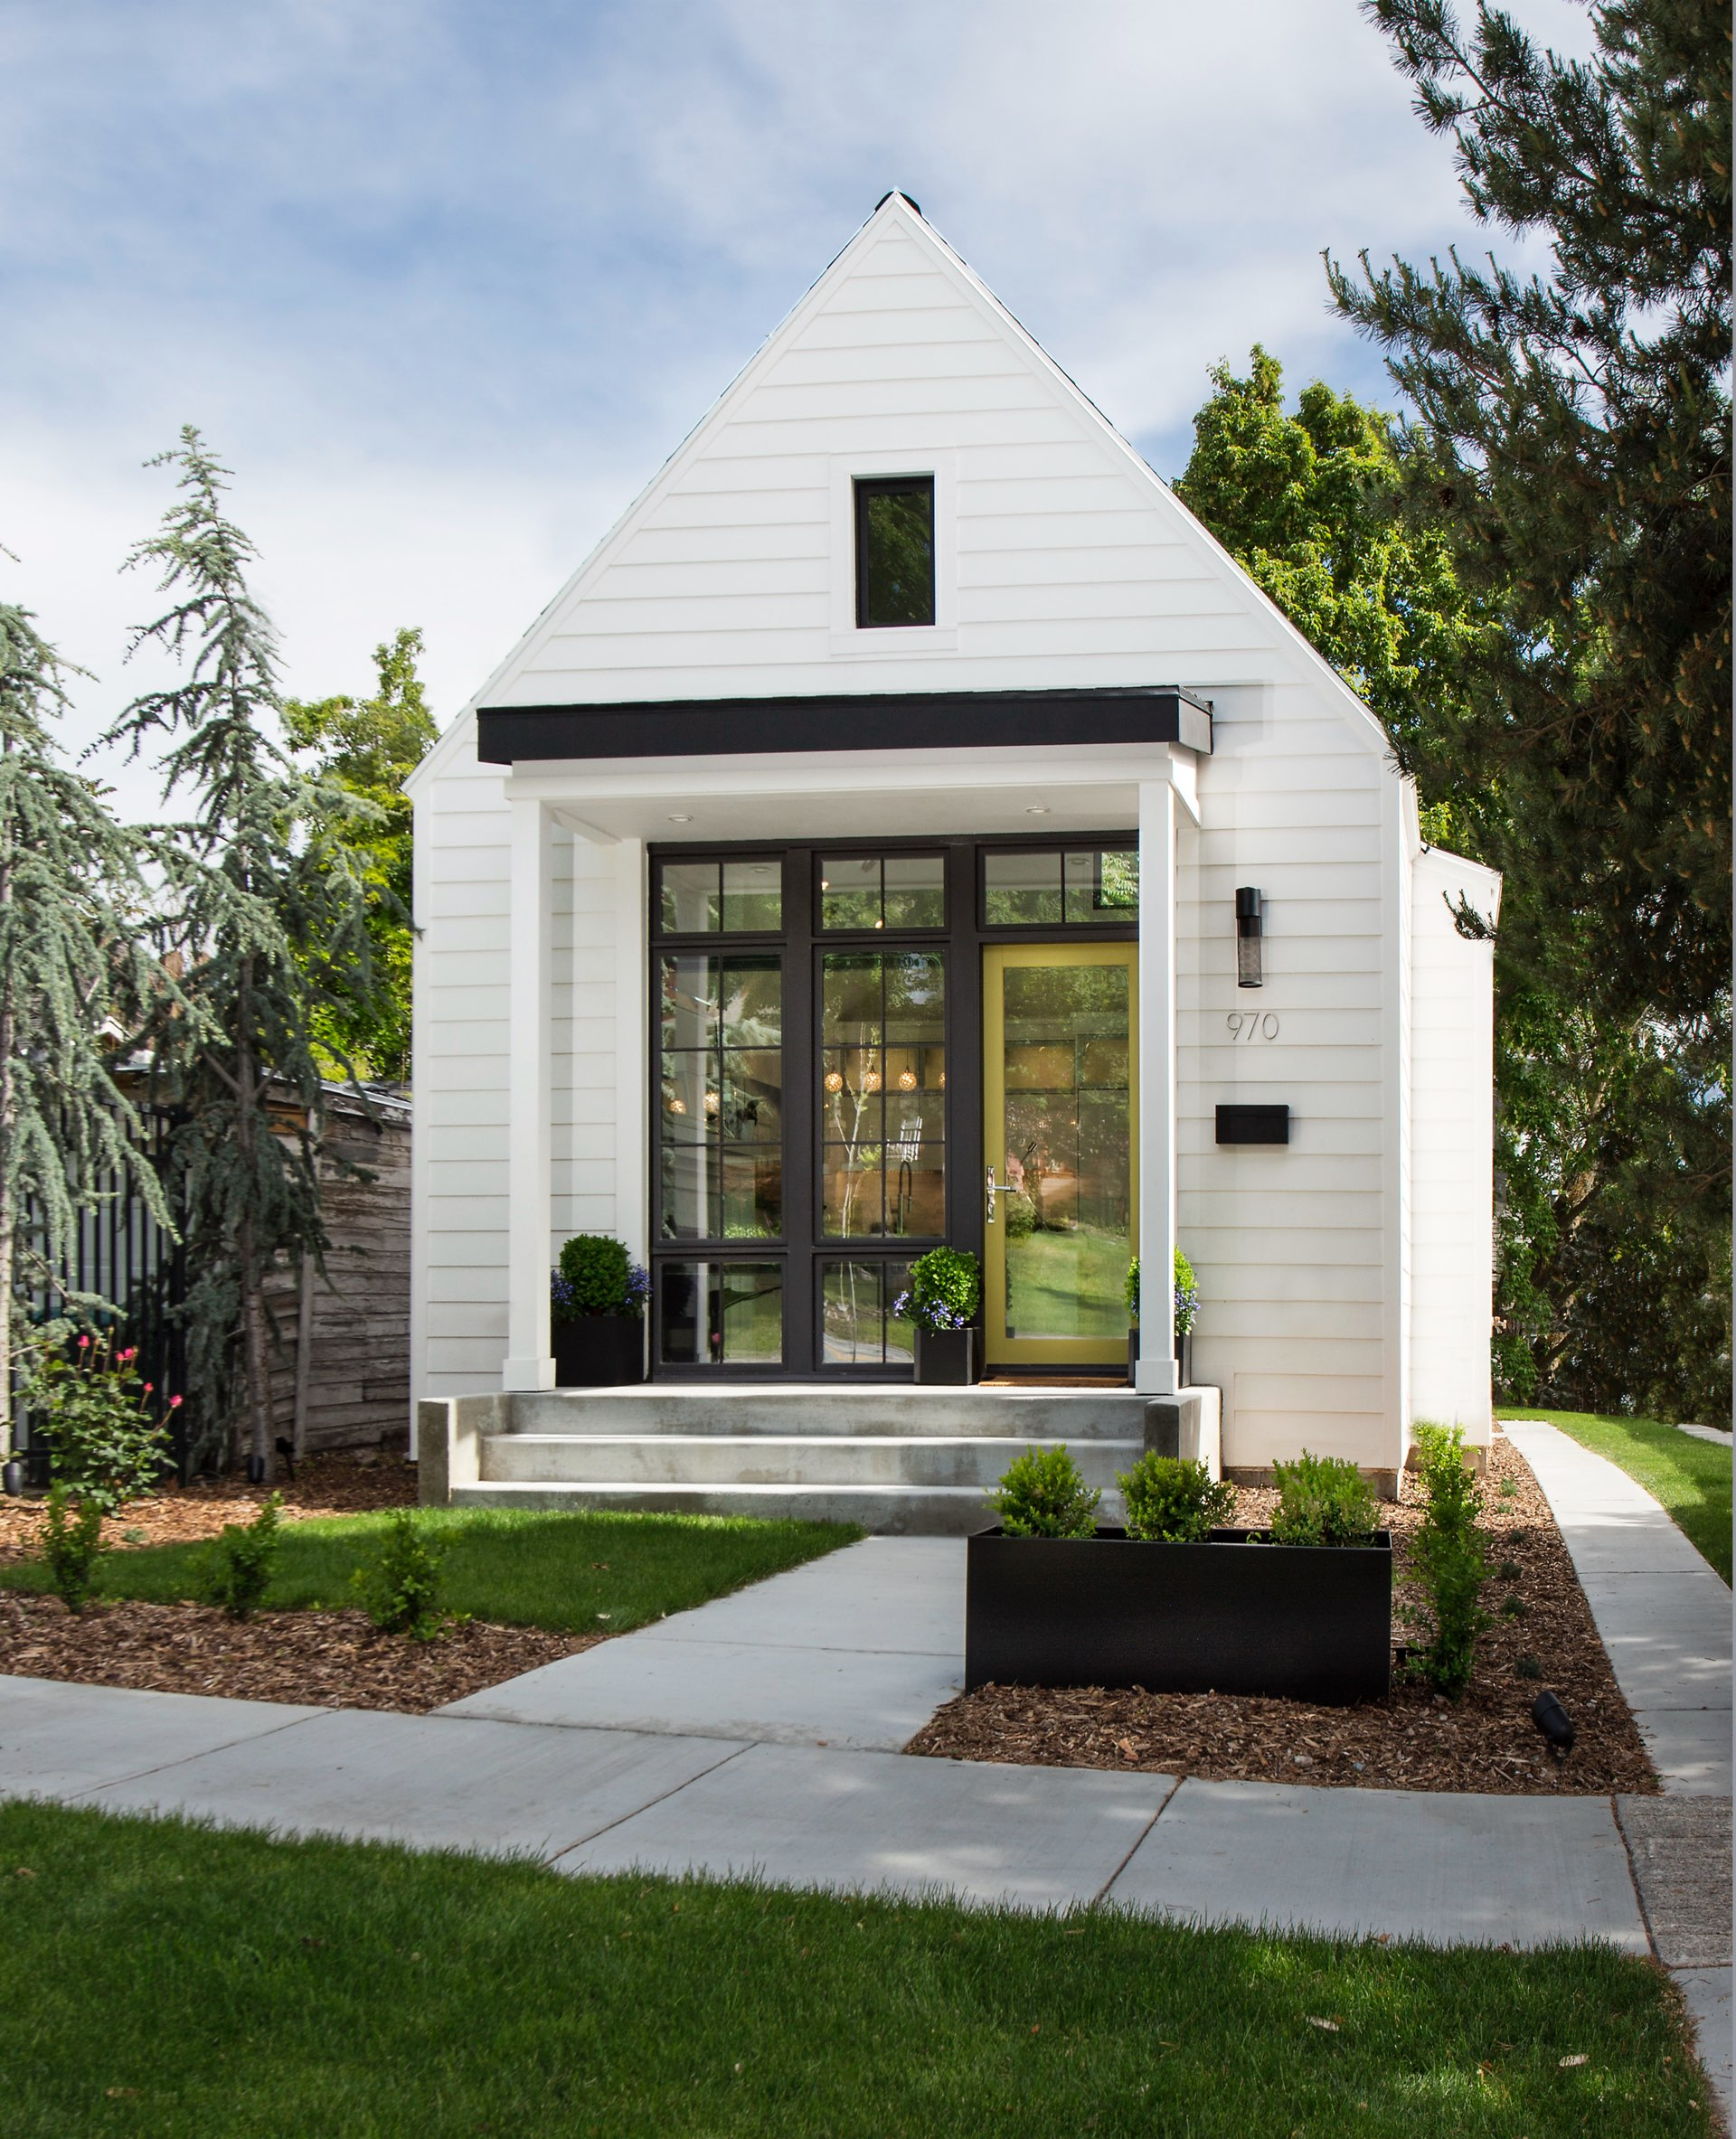 House 970, residential architectural design by Elliott Workgroup